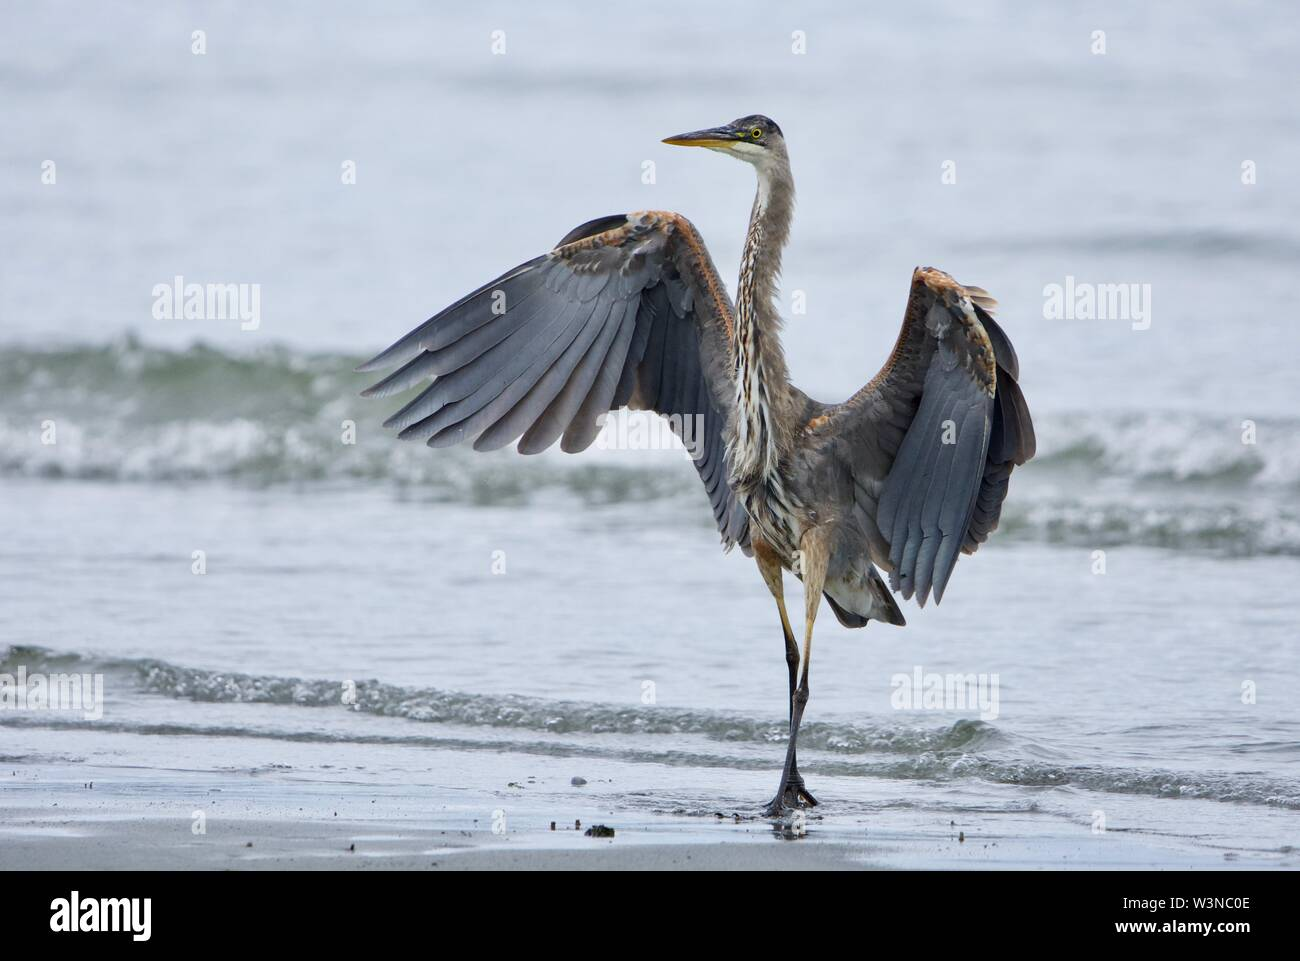 Juvenile great blue heron looks like a dancer as it stands with wings spread, Witty's Lagoon, Vancouver Island, British Columbia. - Stock Image